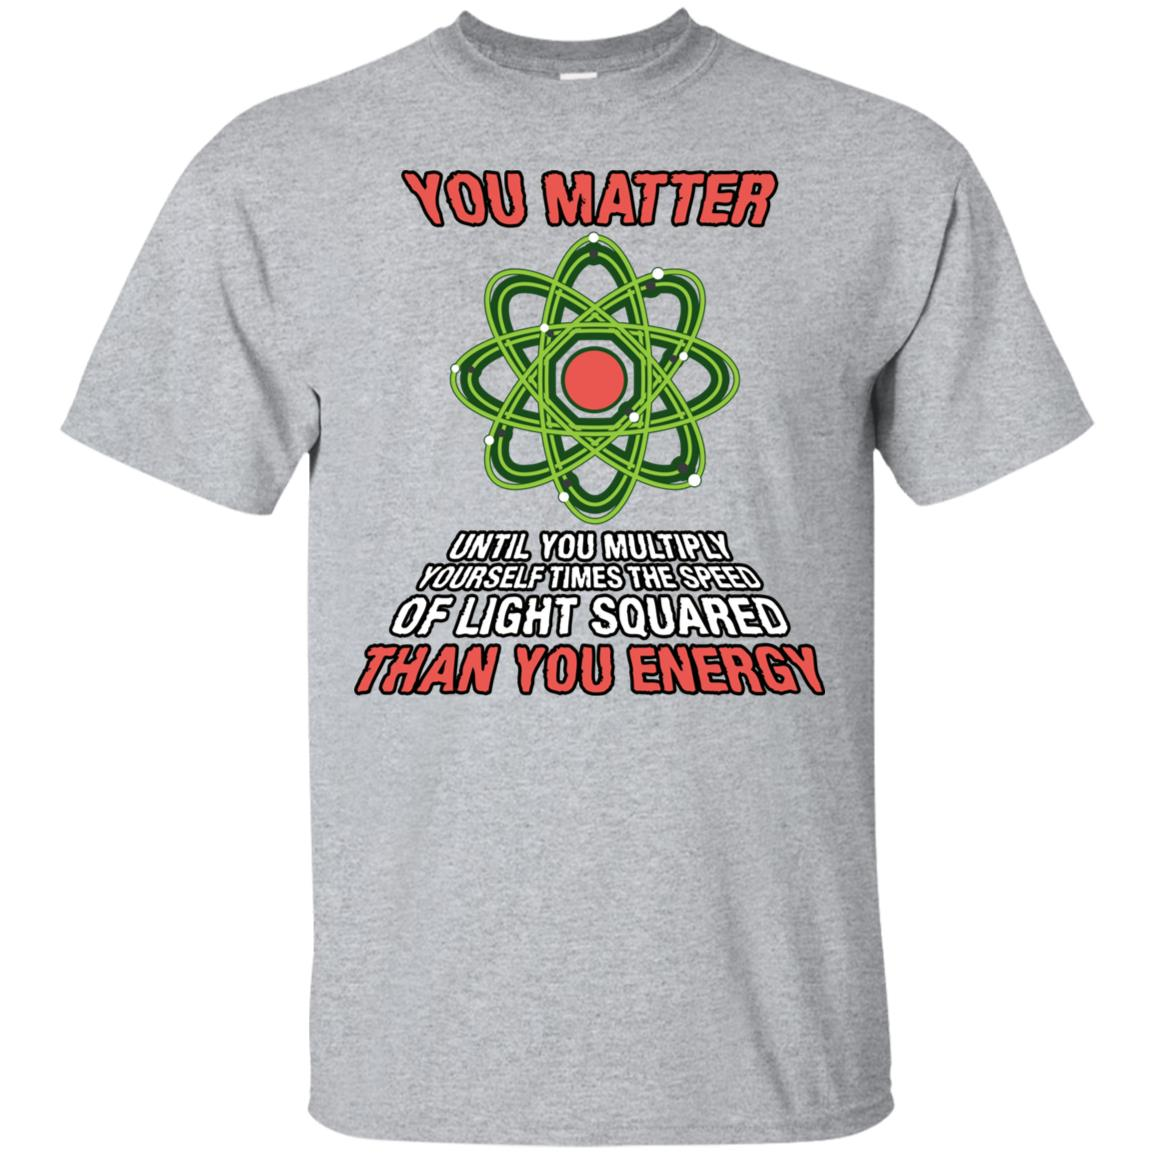 You Matter Then You Energy - Funny Science Unisex Short Sleeve